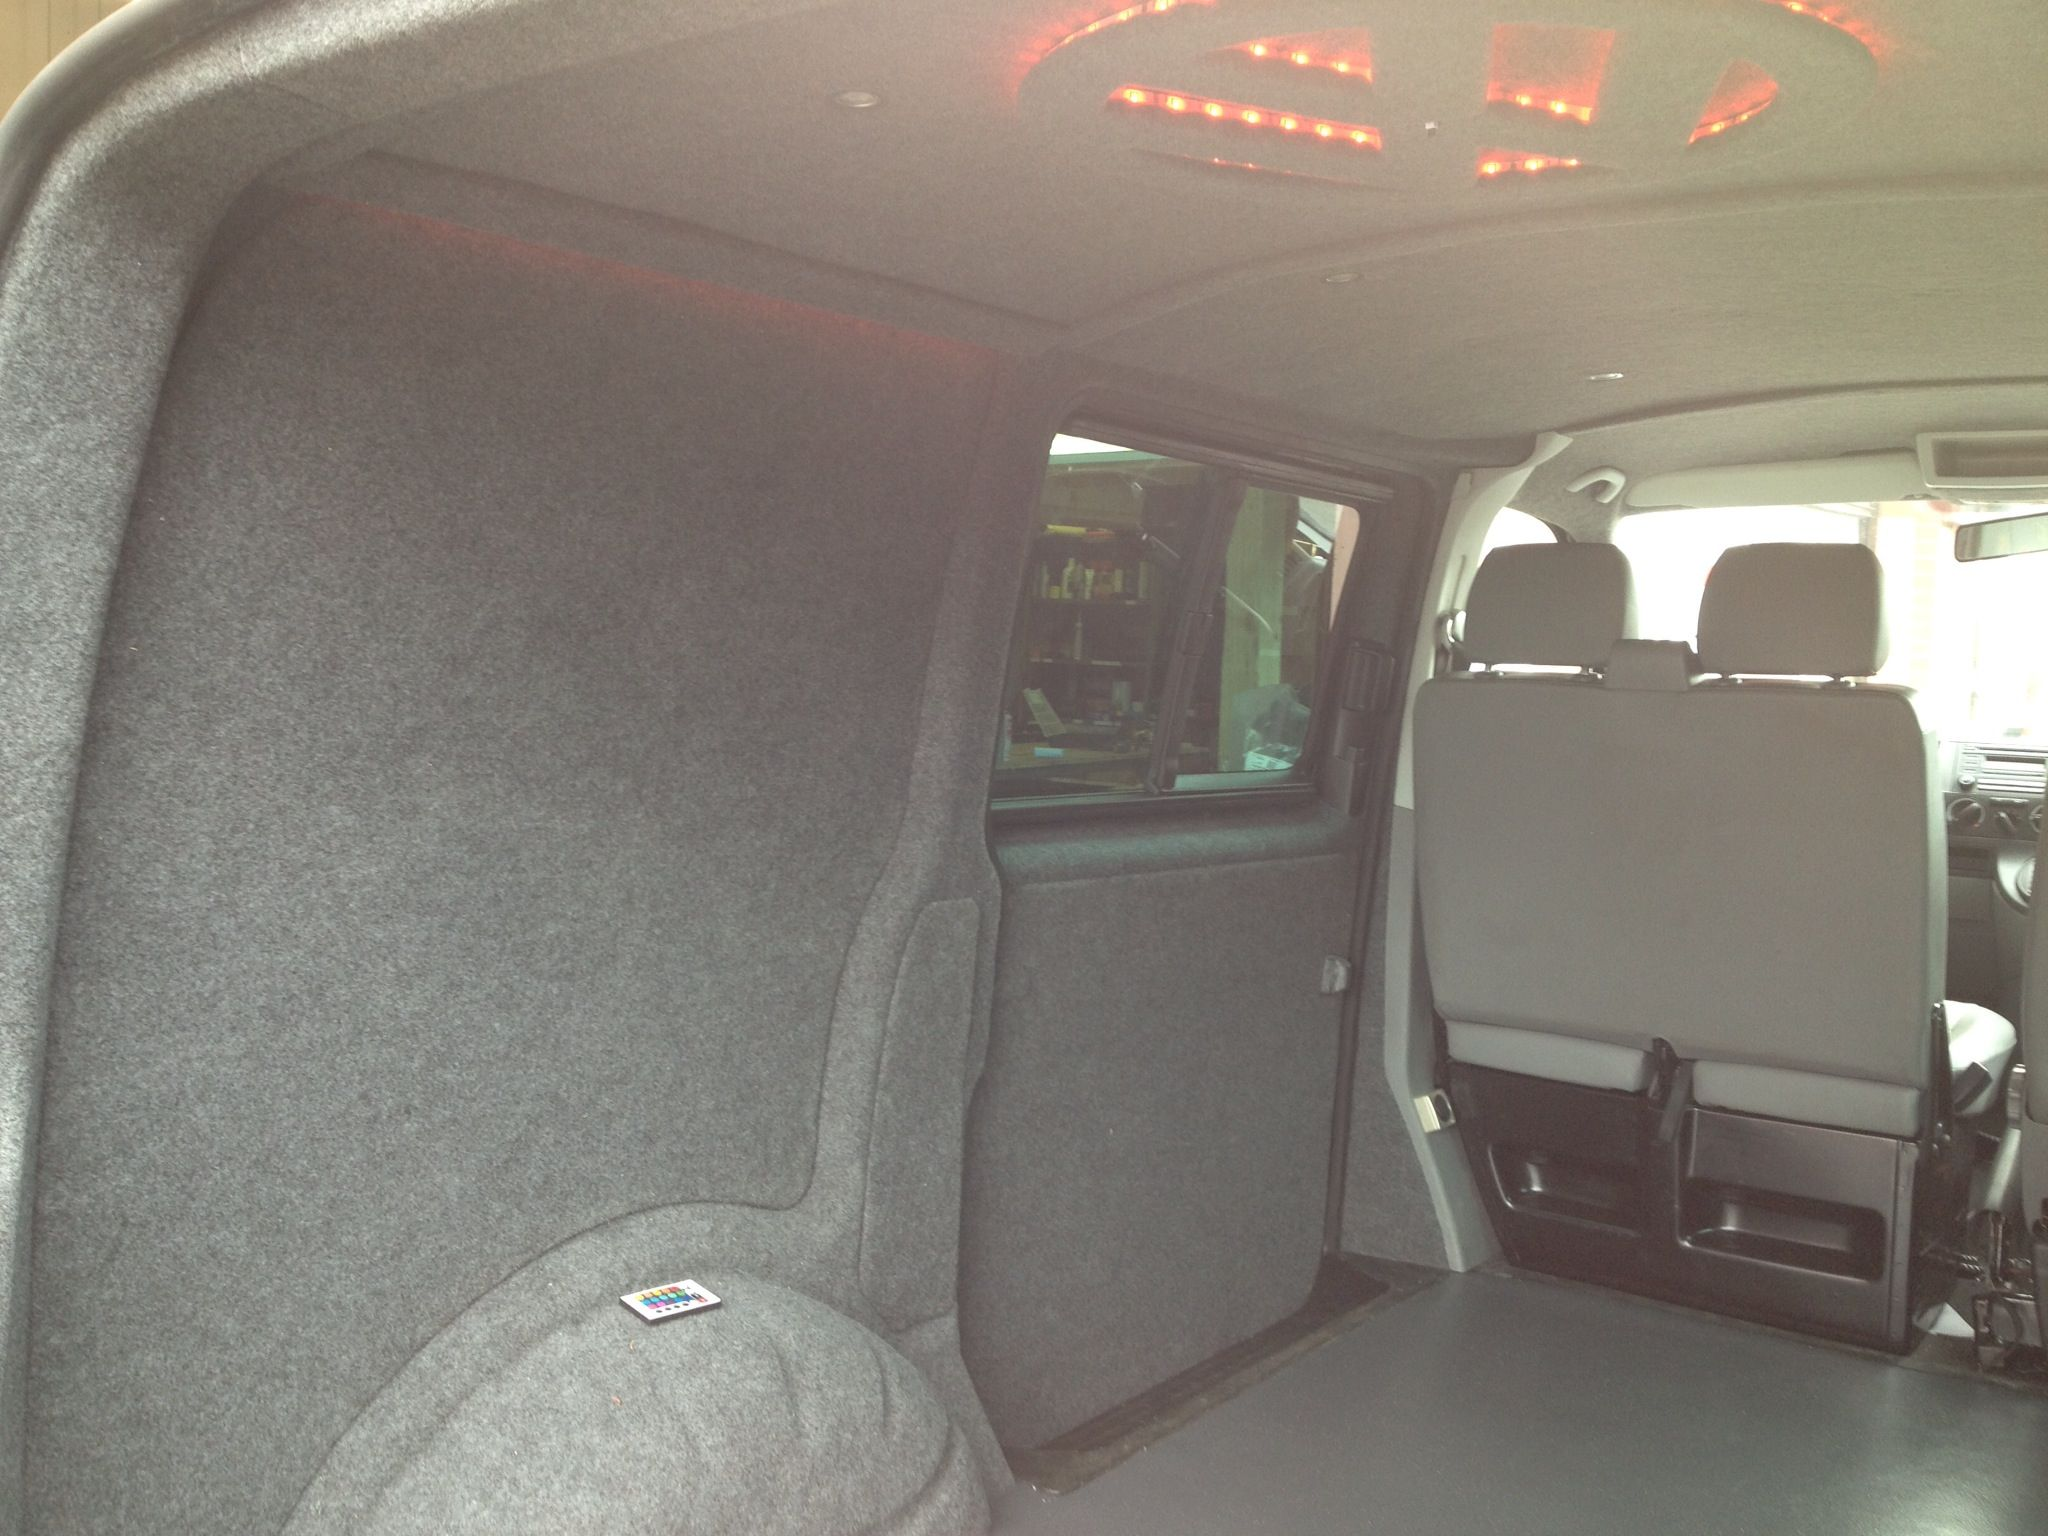 Aufbewahrung Schuhe Wohnwagen Vw Transporter T5 Fully Carpeted With Mood Lights Done